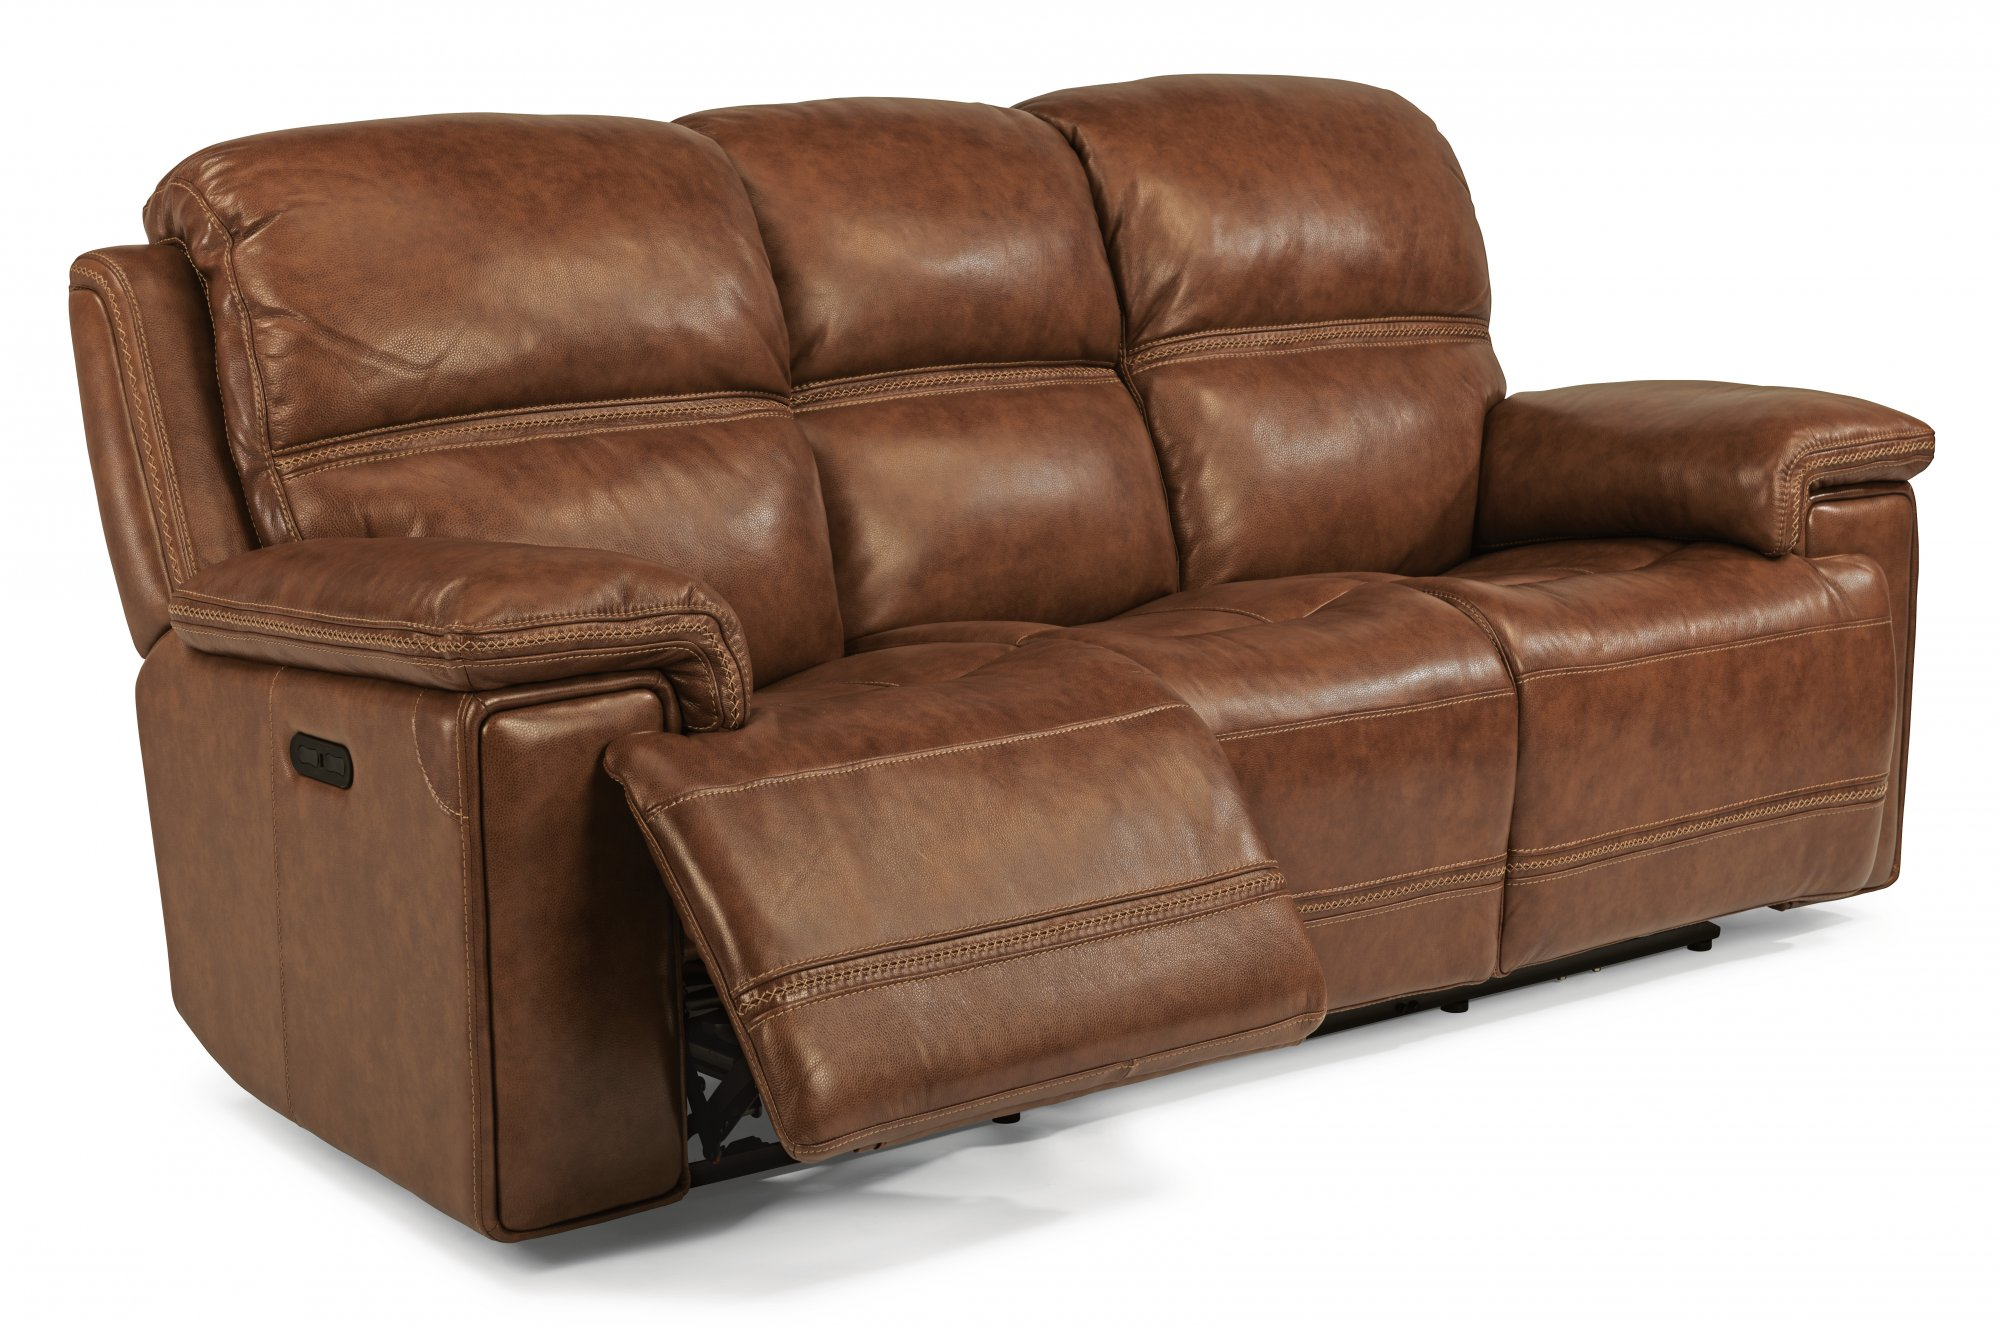 Queen Anne Recliner Ashley Furniture | Free Home Design ...